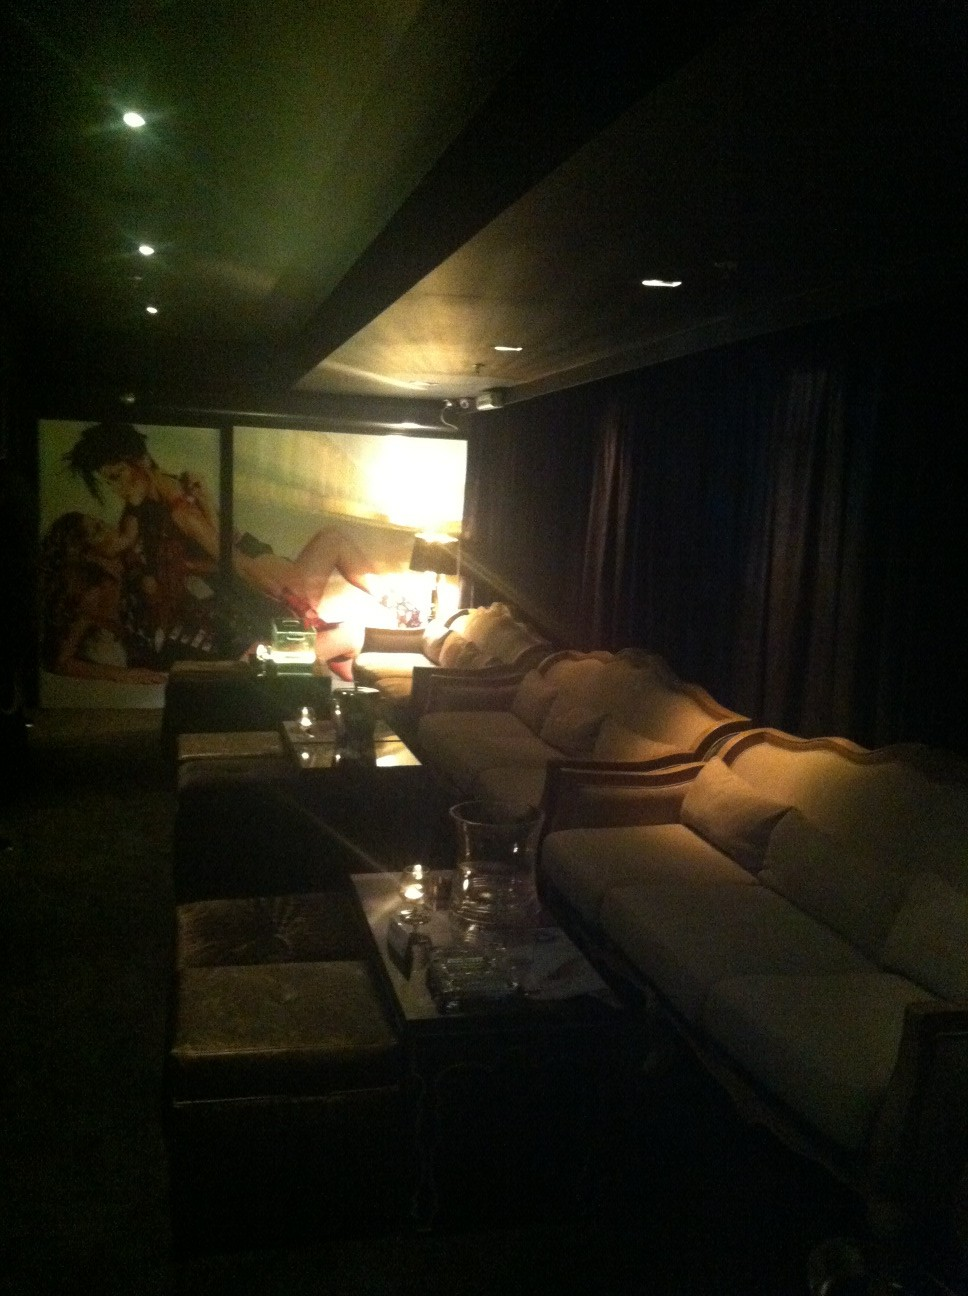 Sjoe!That looks awesome!RT @c_live: The VIP Room #MichealAngeloTowers http://t.co/lGtmXh0x